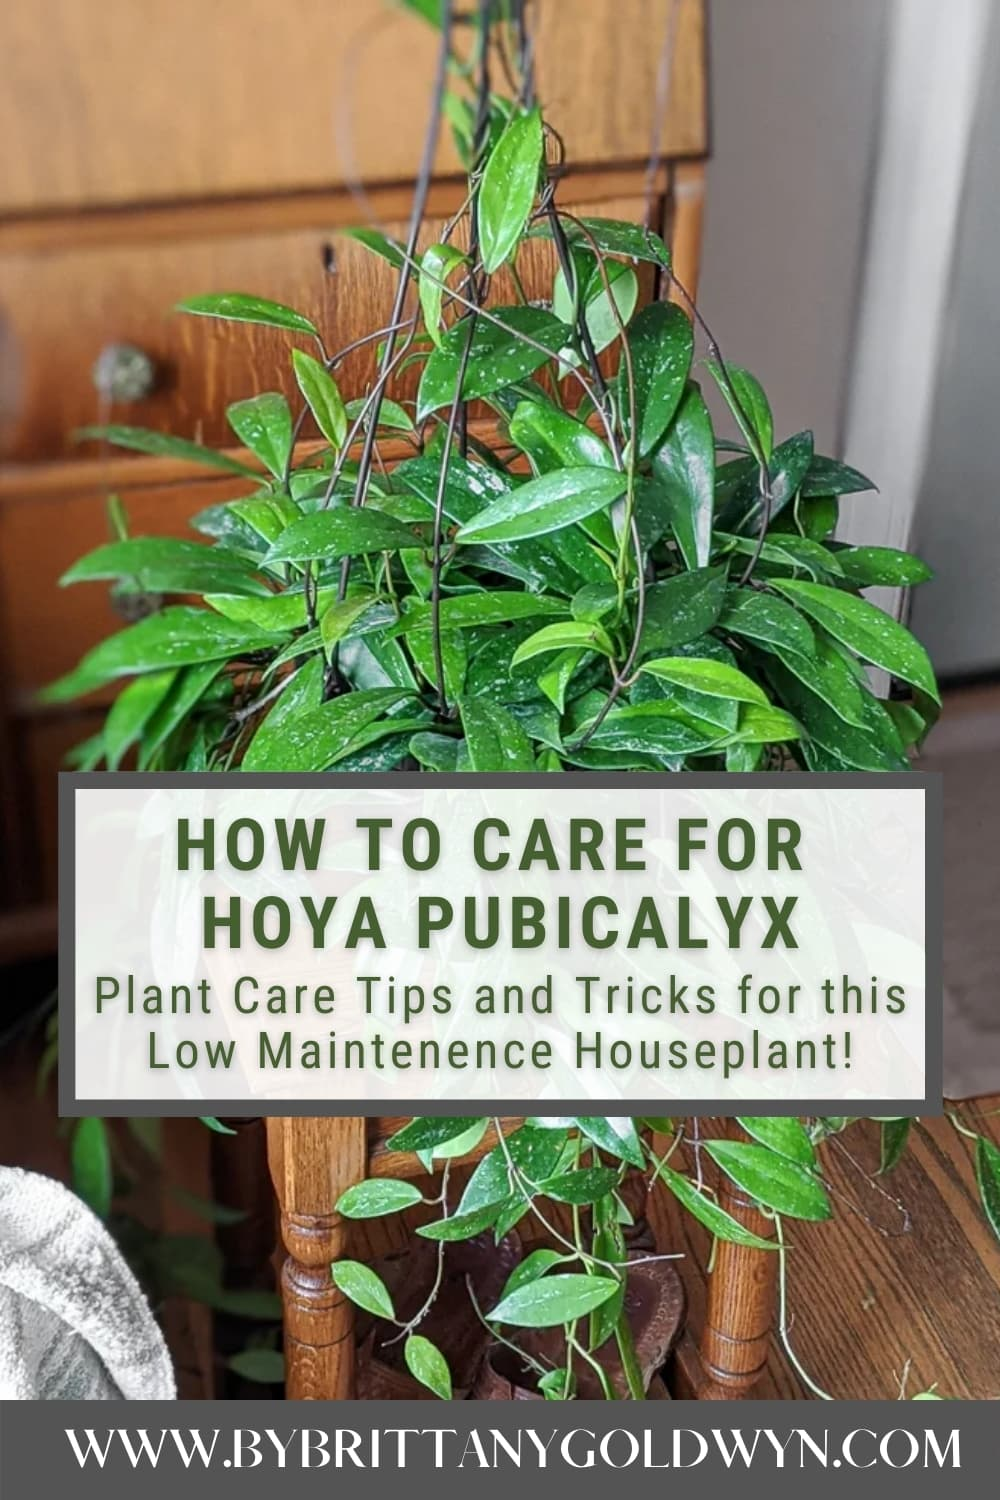 Image of Hoy Pubicalyx plant with text overlay